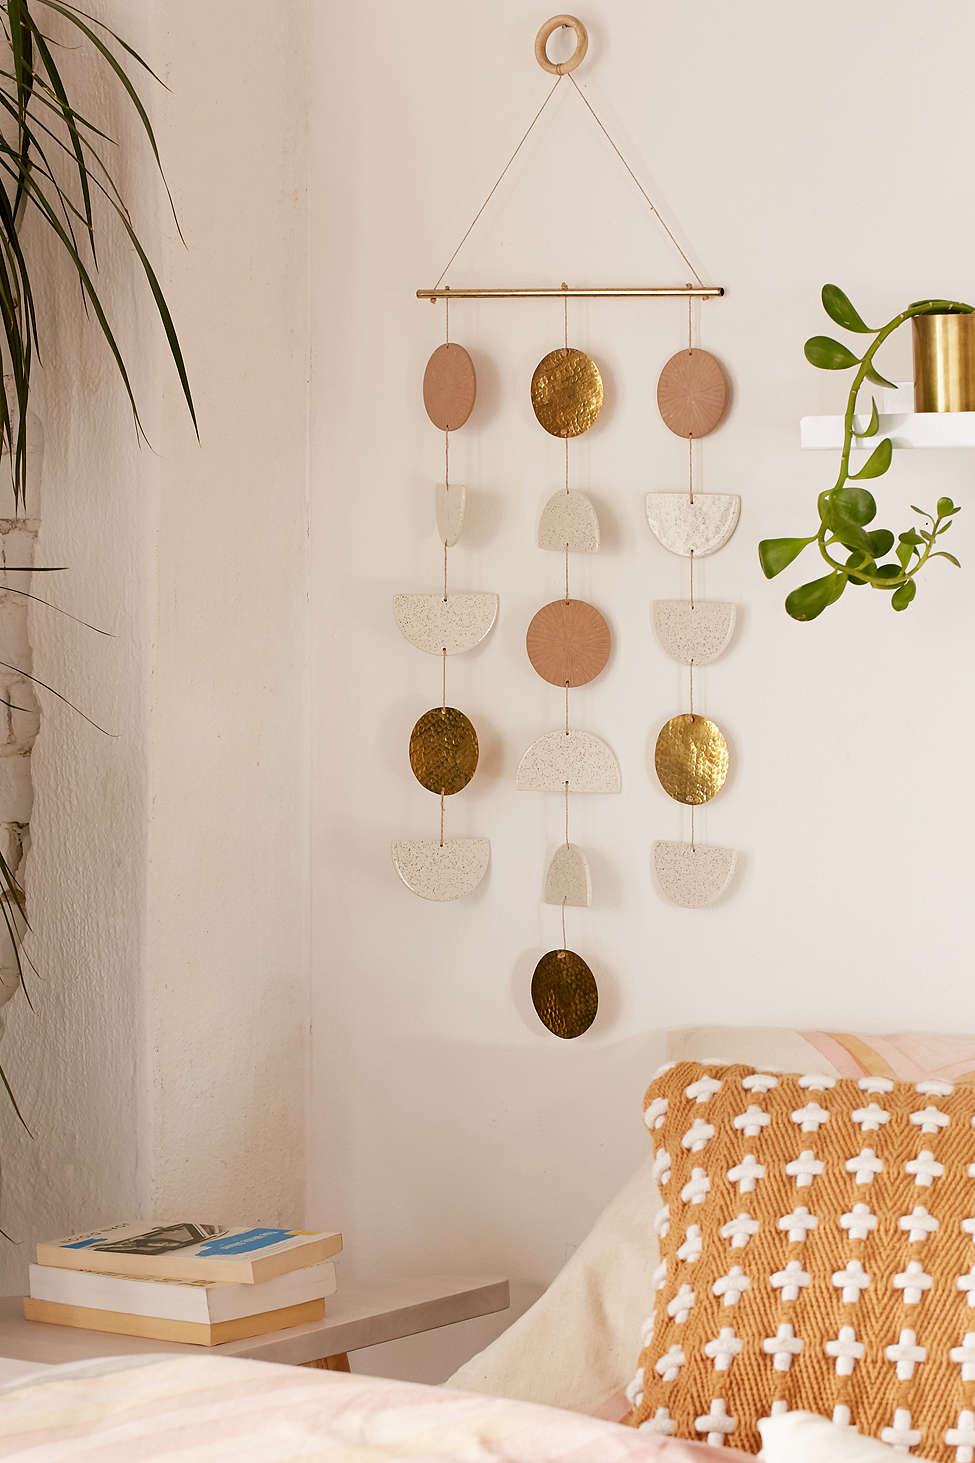 Geo wall hanging from Urban Outfitters